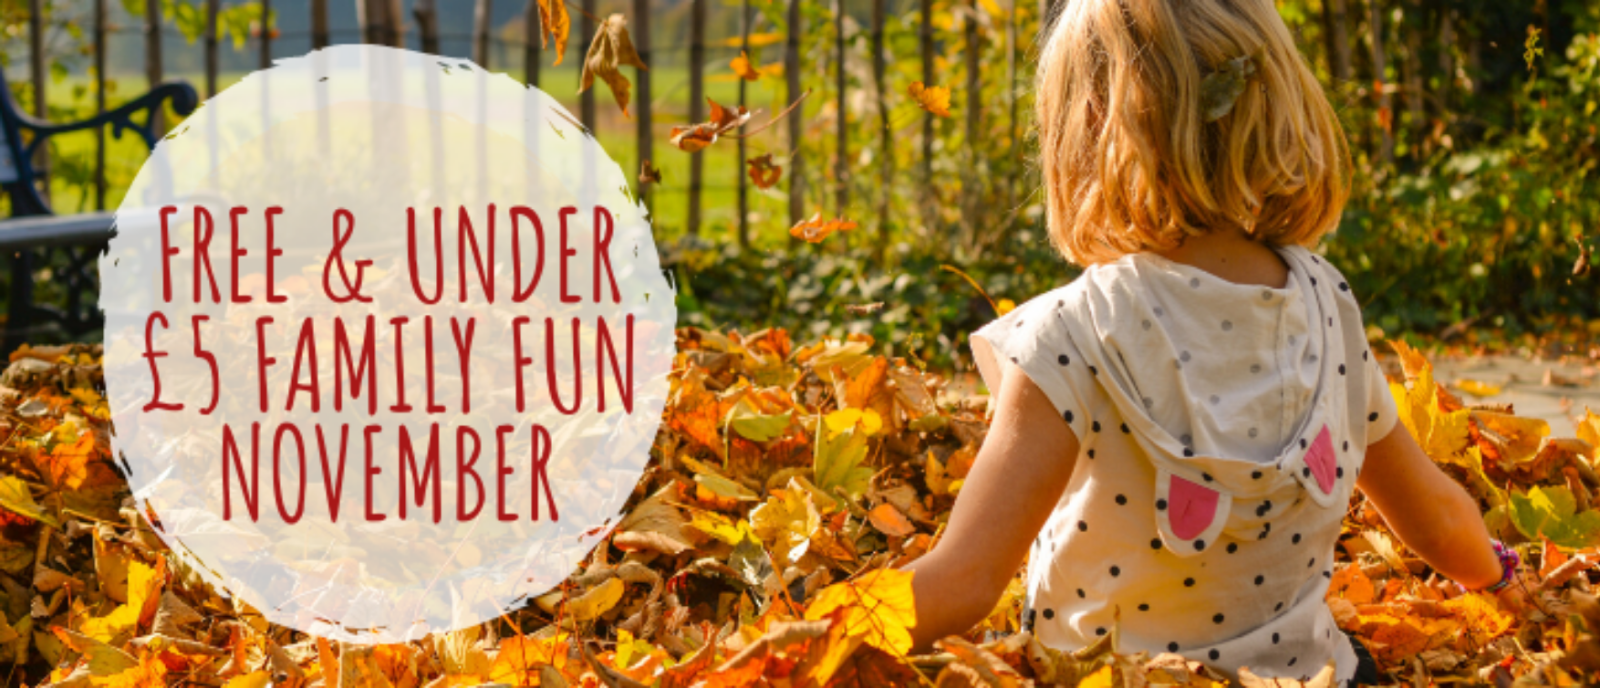 Free and under £5 activities for November